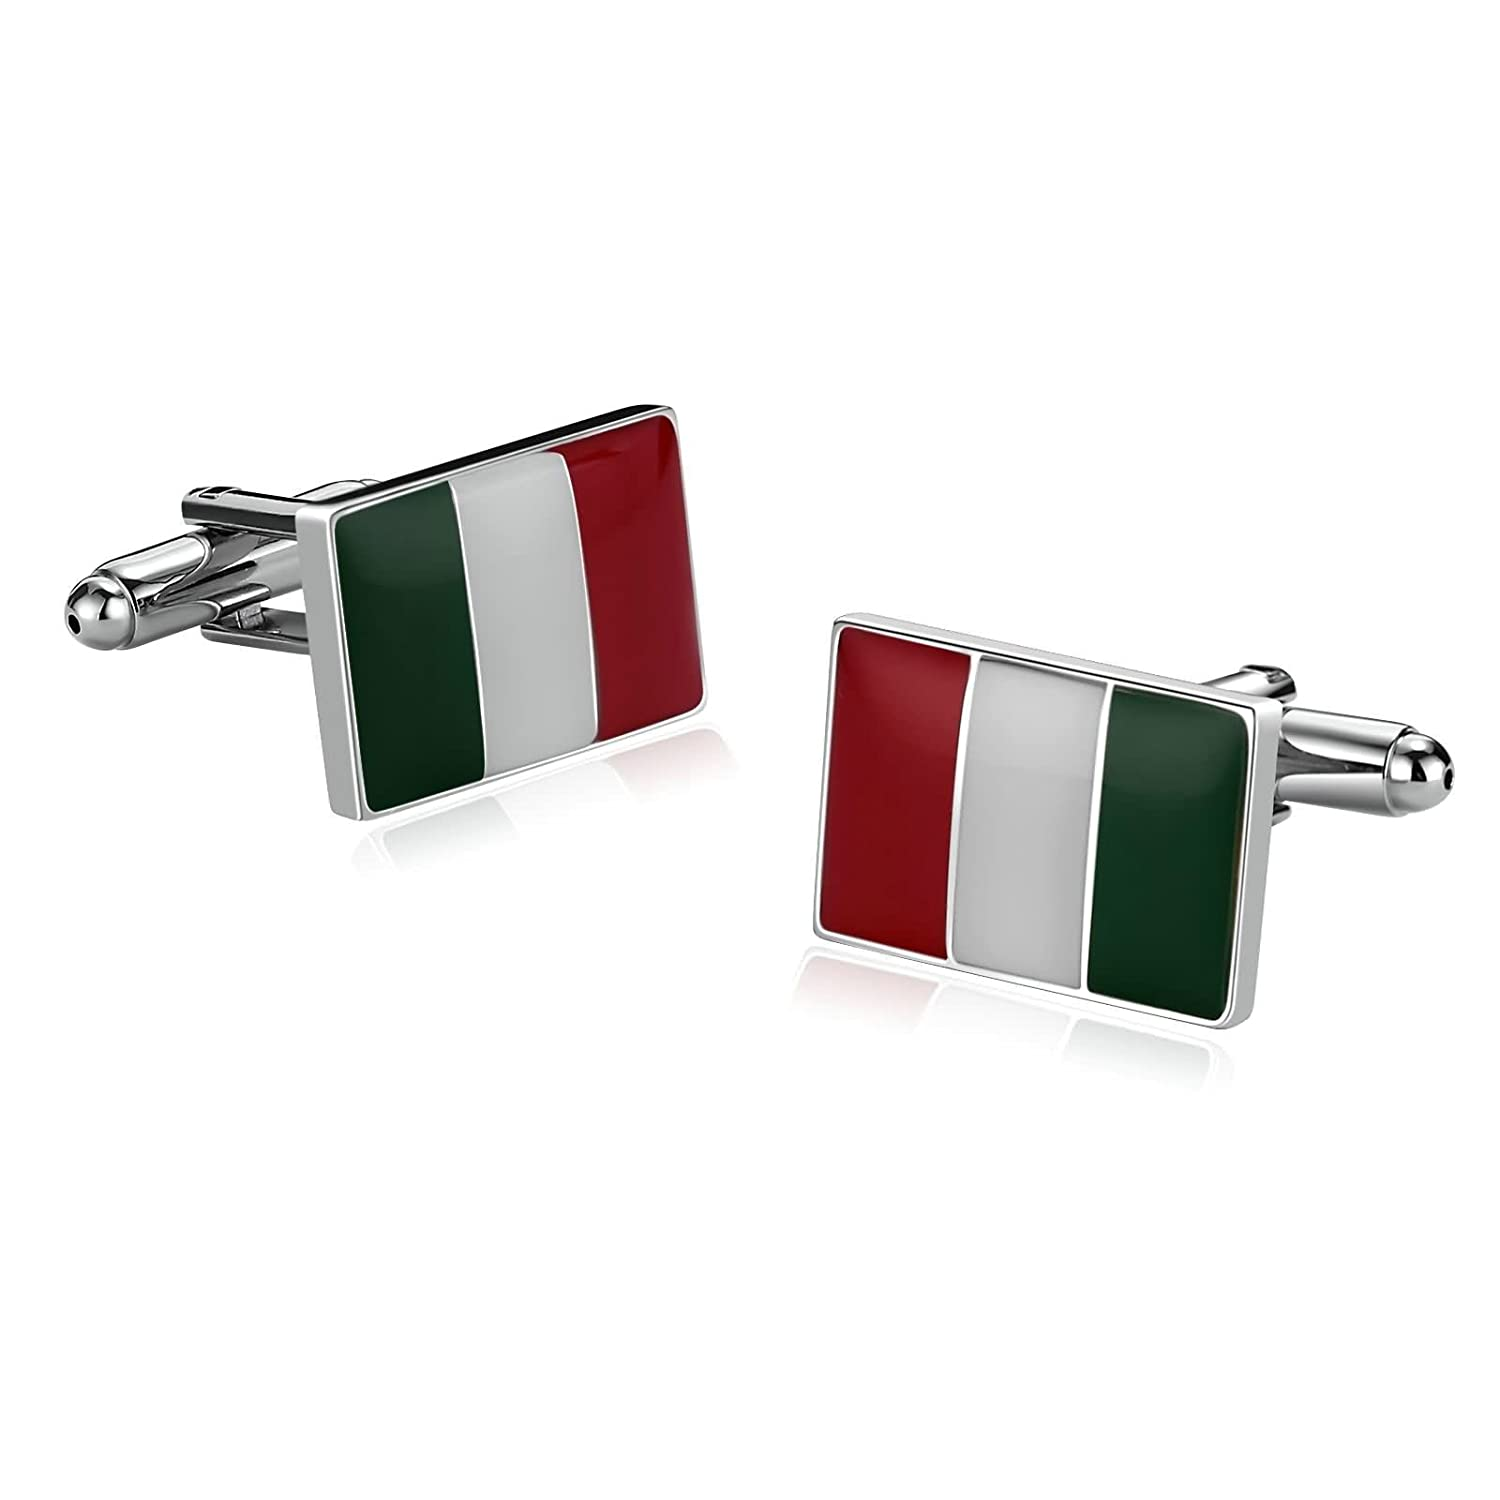 Gnzoe Men Stainless Steel Shirt Cuff Links Wedding Business Italian Flag Italy Green White Red GZCUFF651K7K292